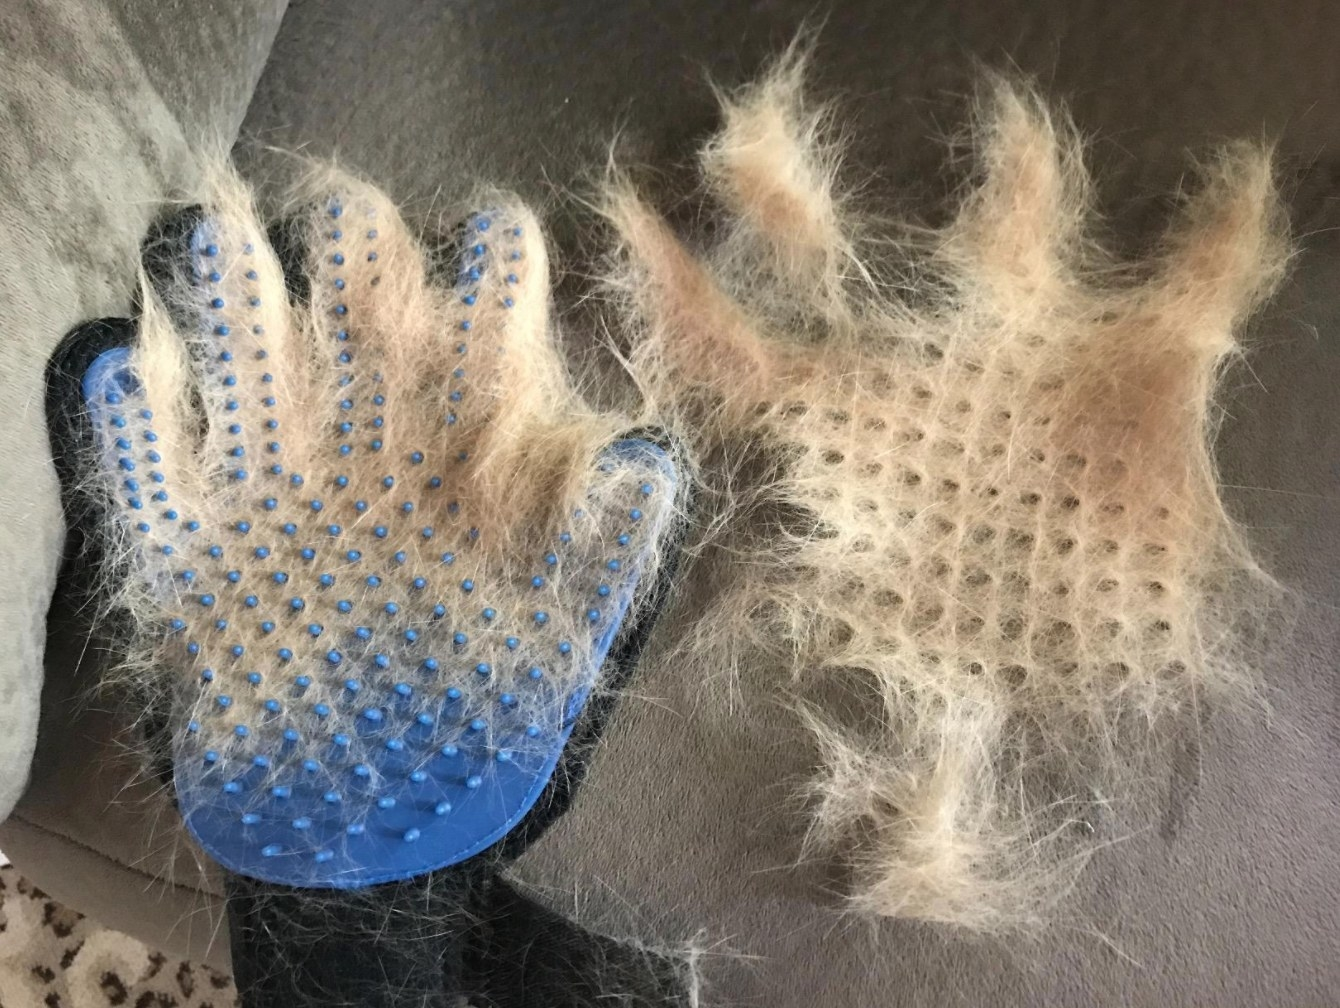 The reviewer's image of the glove covered in blonde cat hair